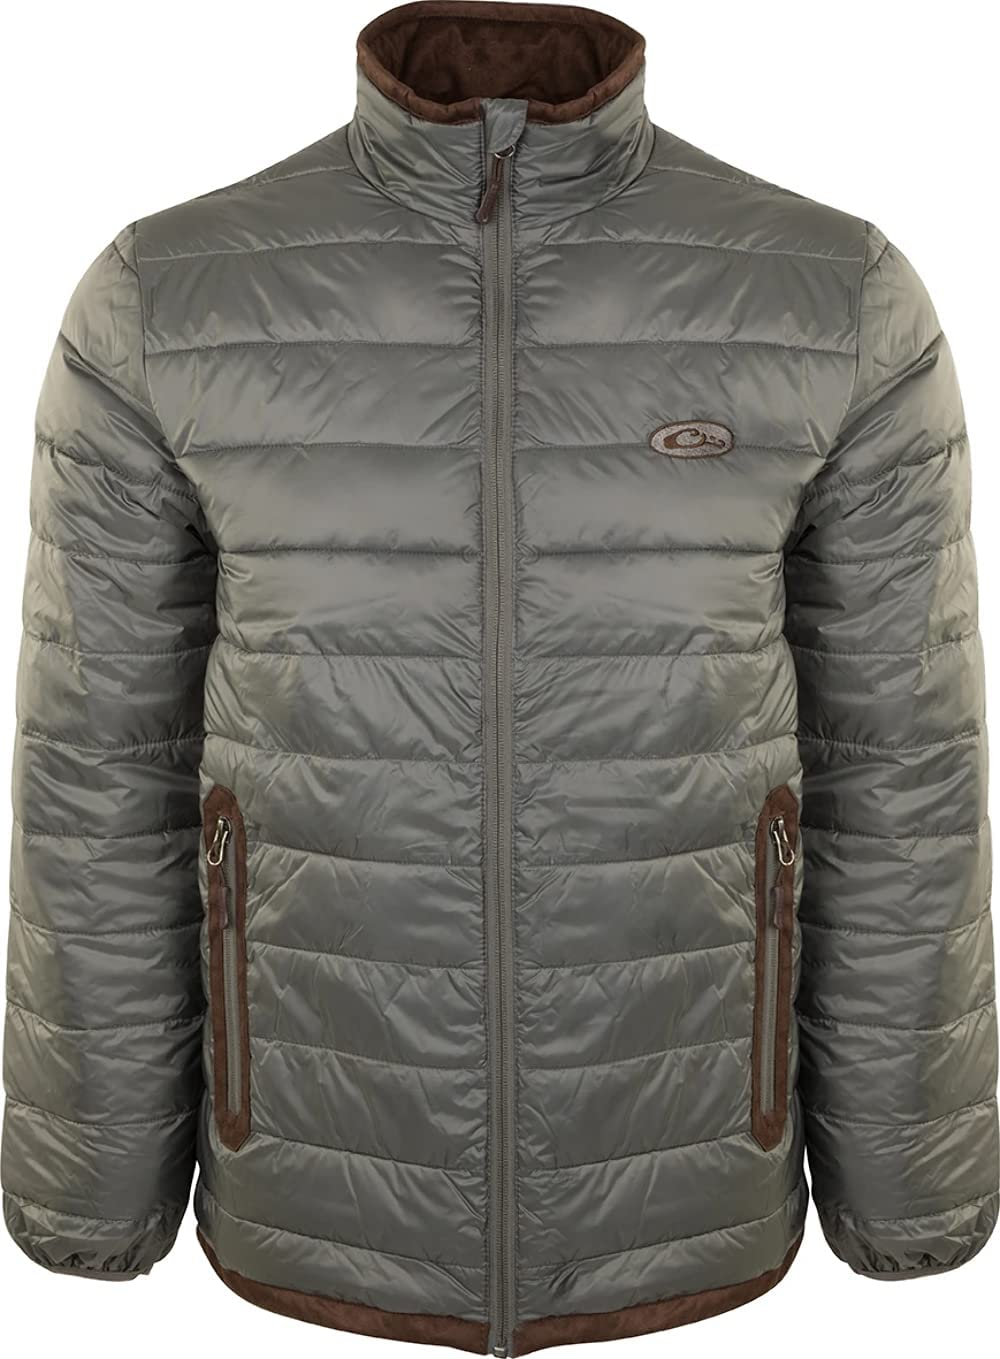 Drake Waterfowl Synthetic Jacket All stores are sold safety Double Down